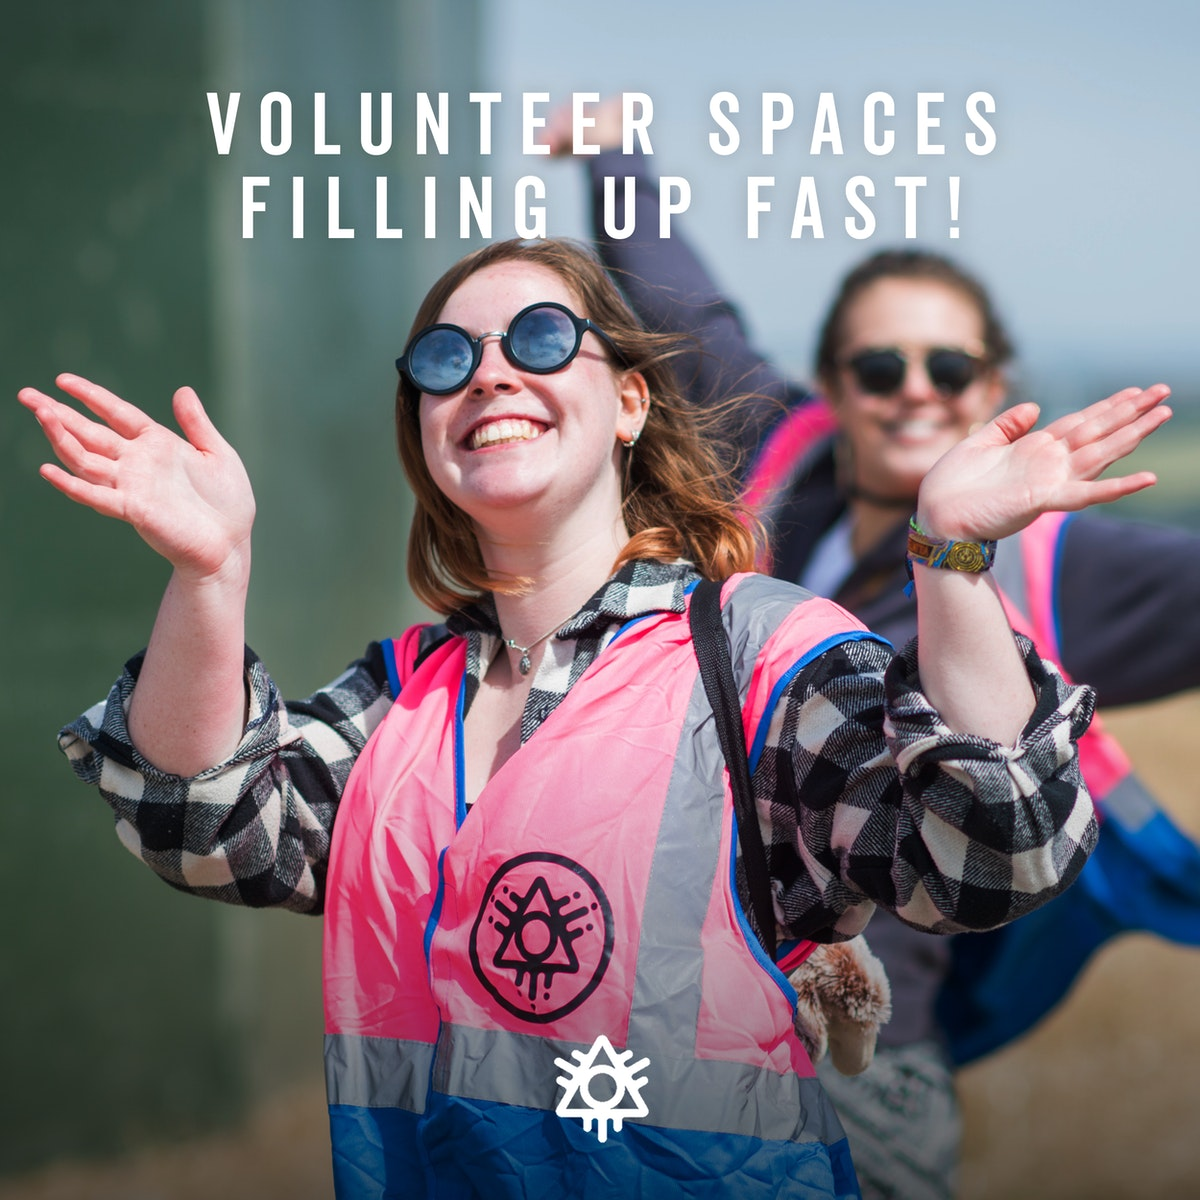 Volunteer spaces filling up fast!